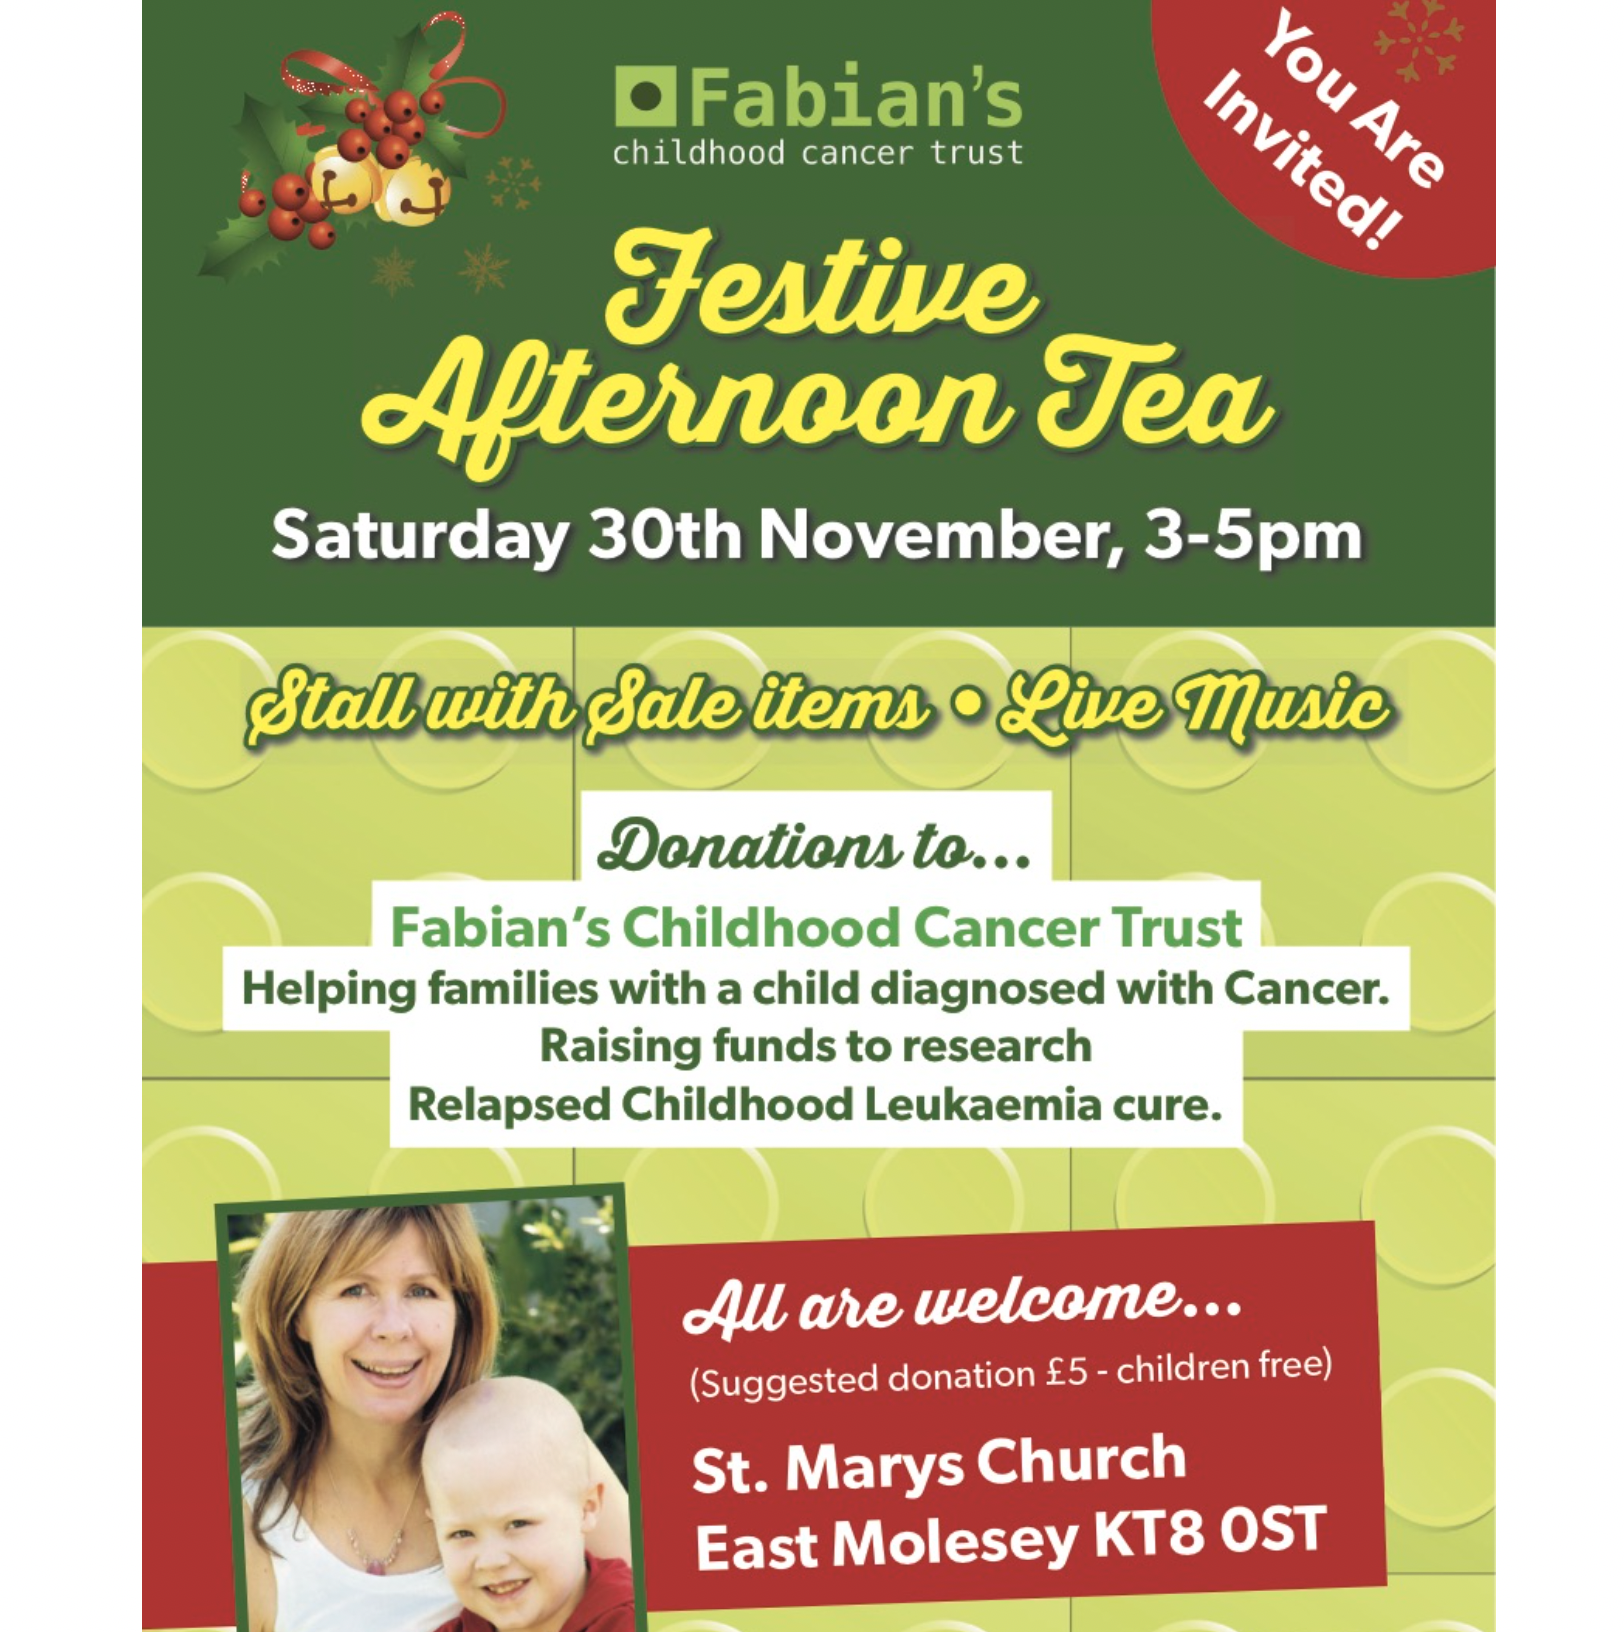 Festive Afternoon Tea at St Mary's Church Saturday 30th November